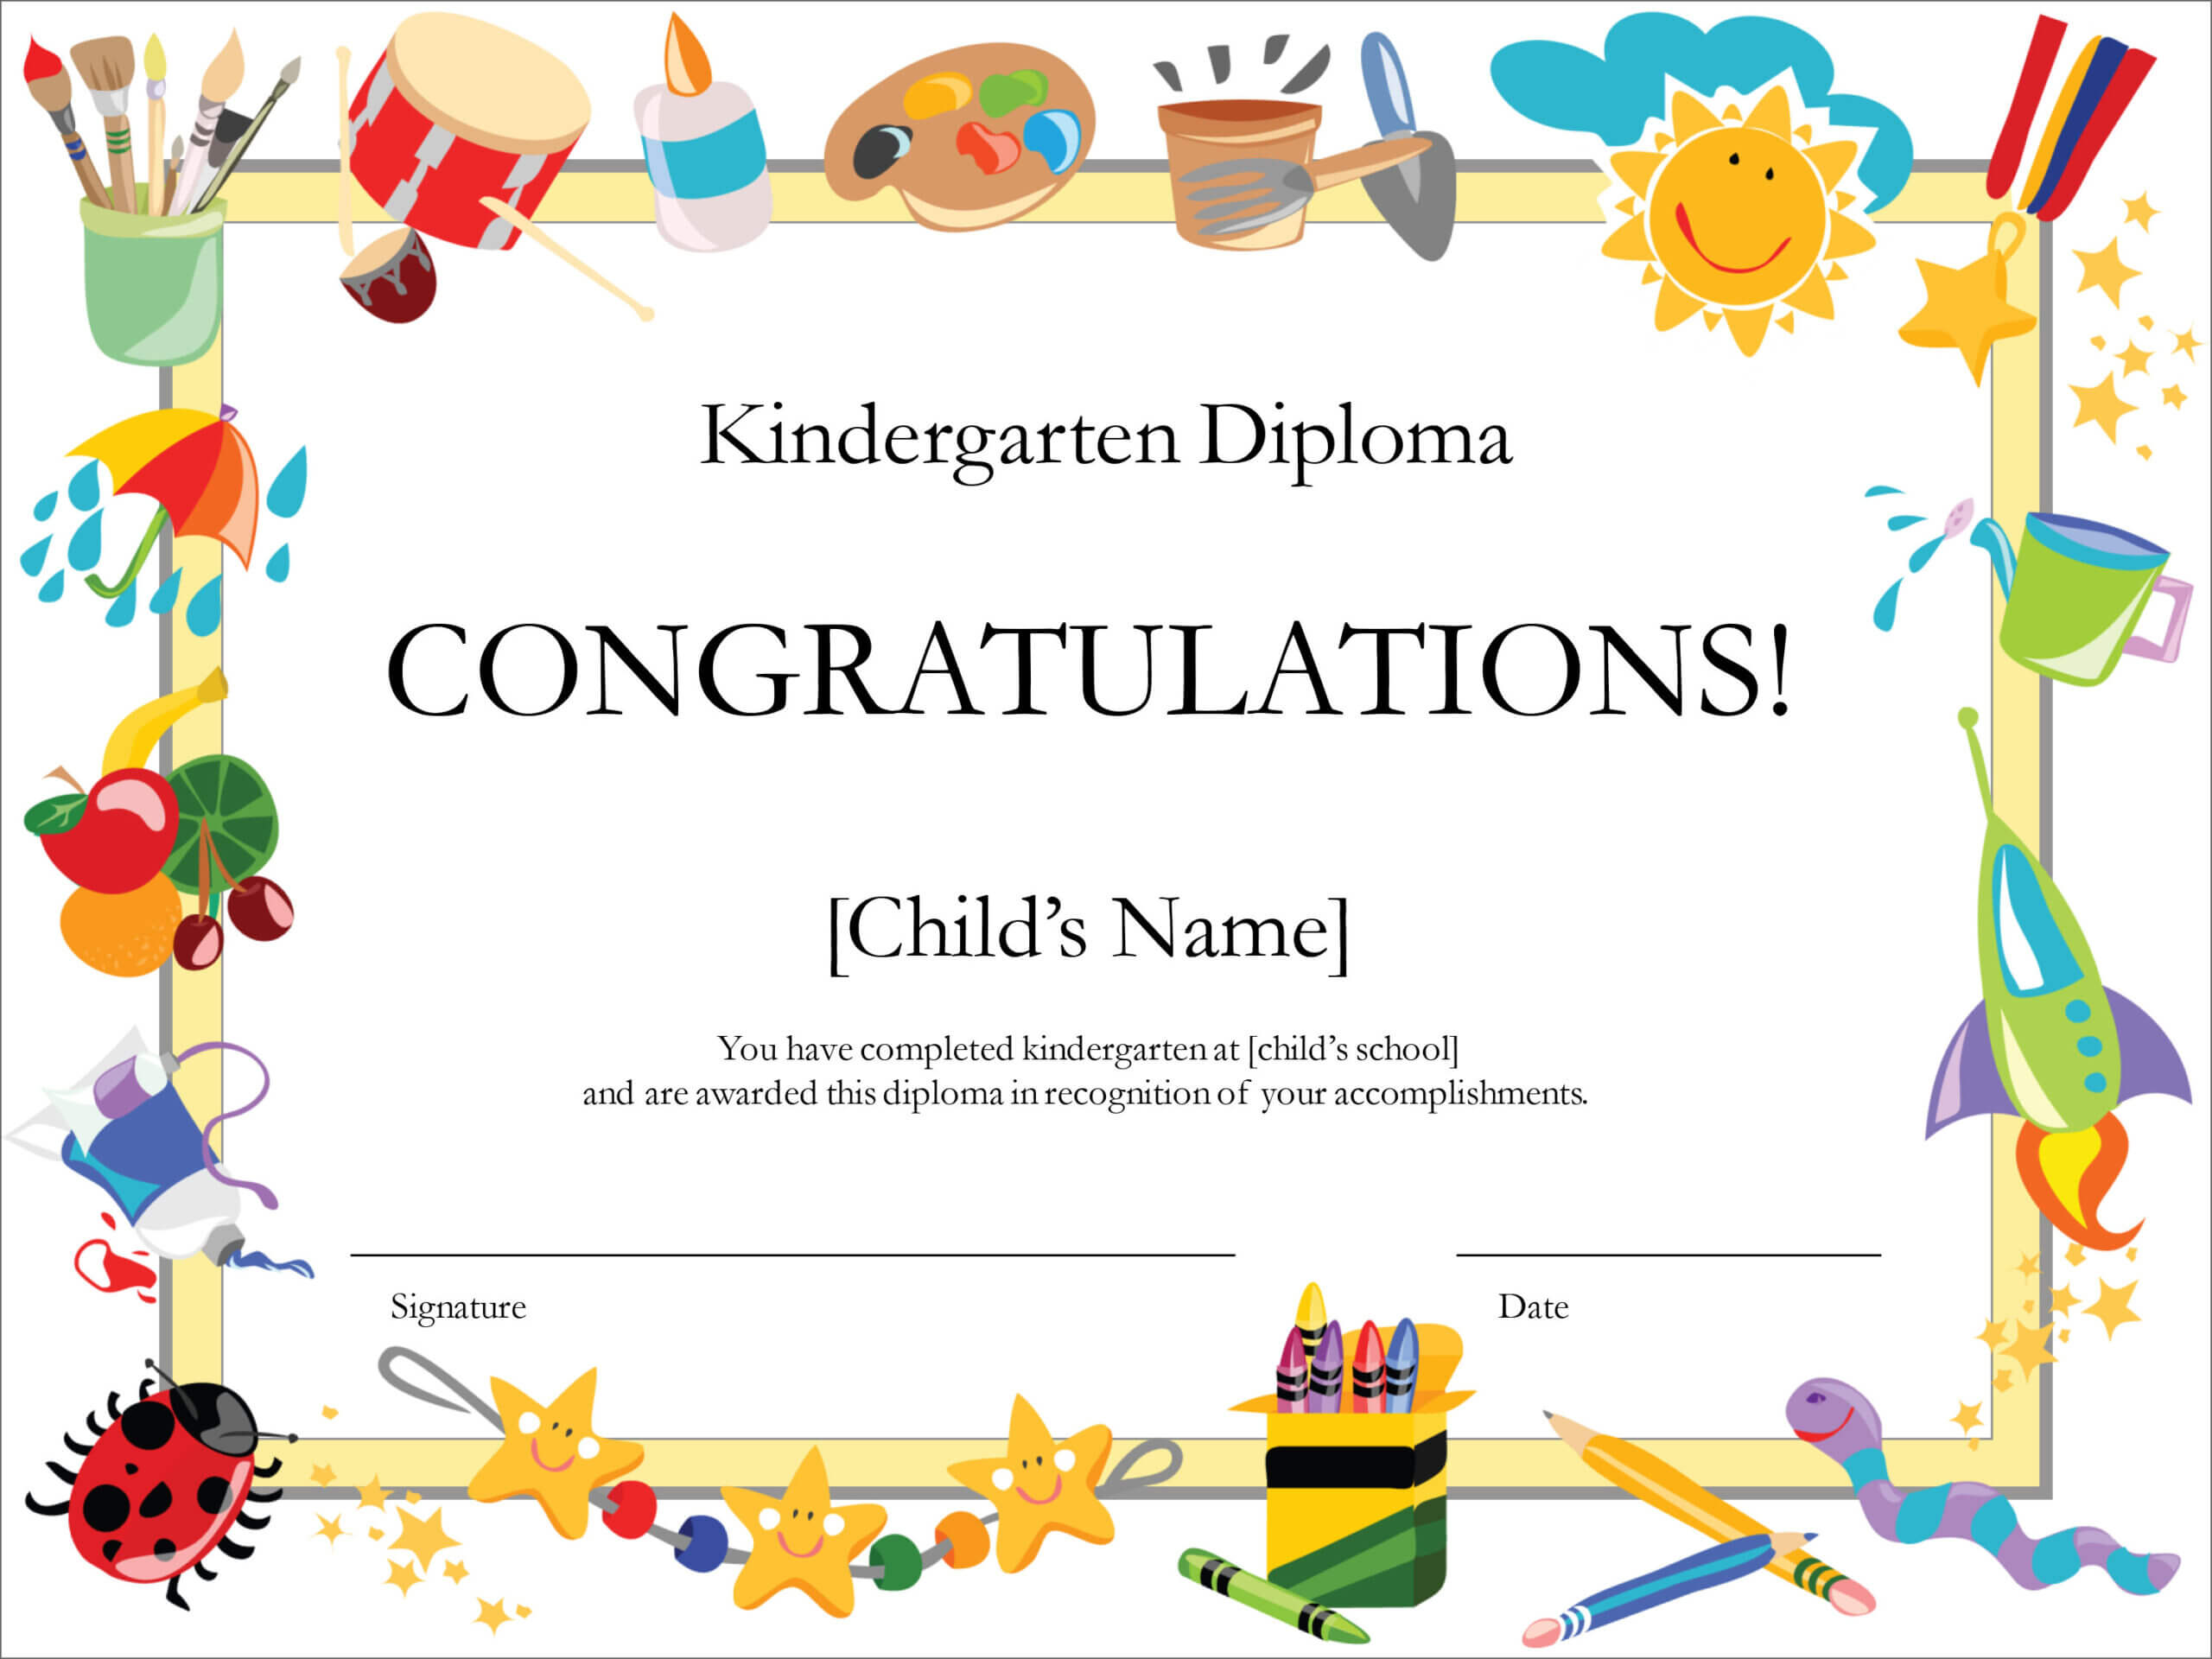 50 Free Creative Blank Certificate Templates In Psd Inside Children's Certificate Template